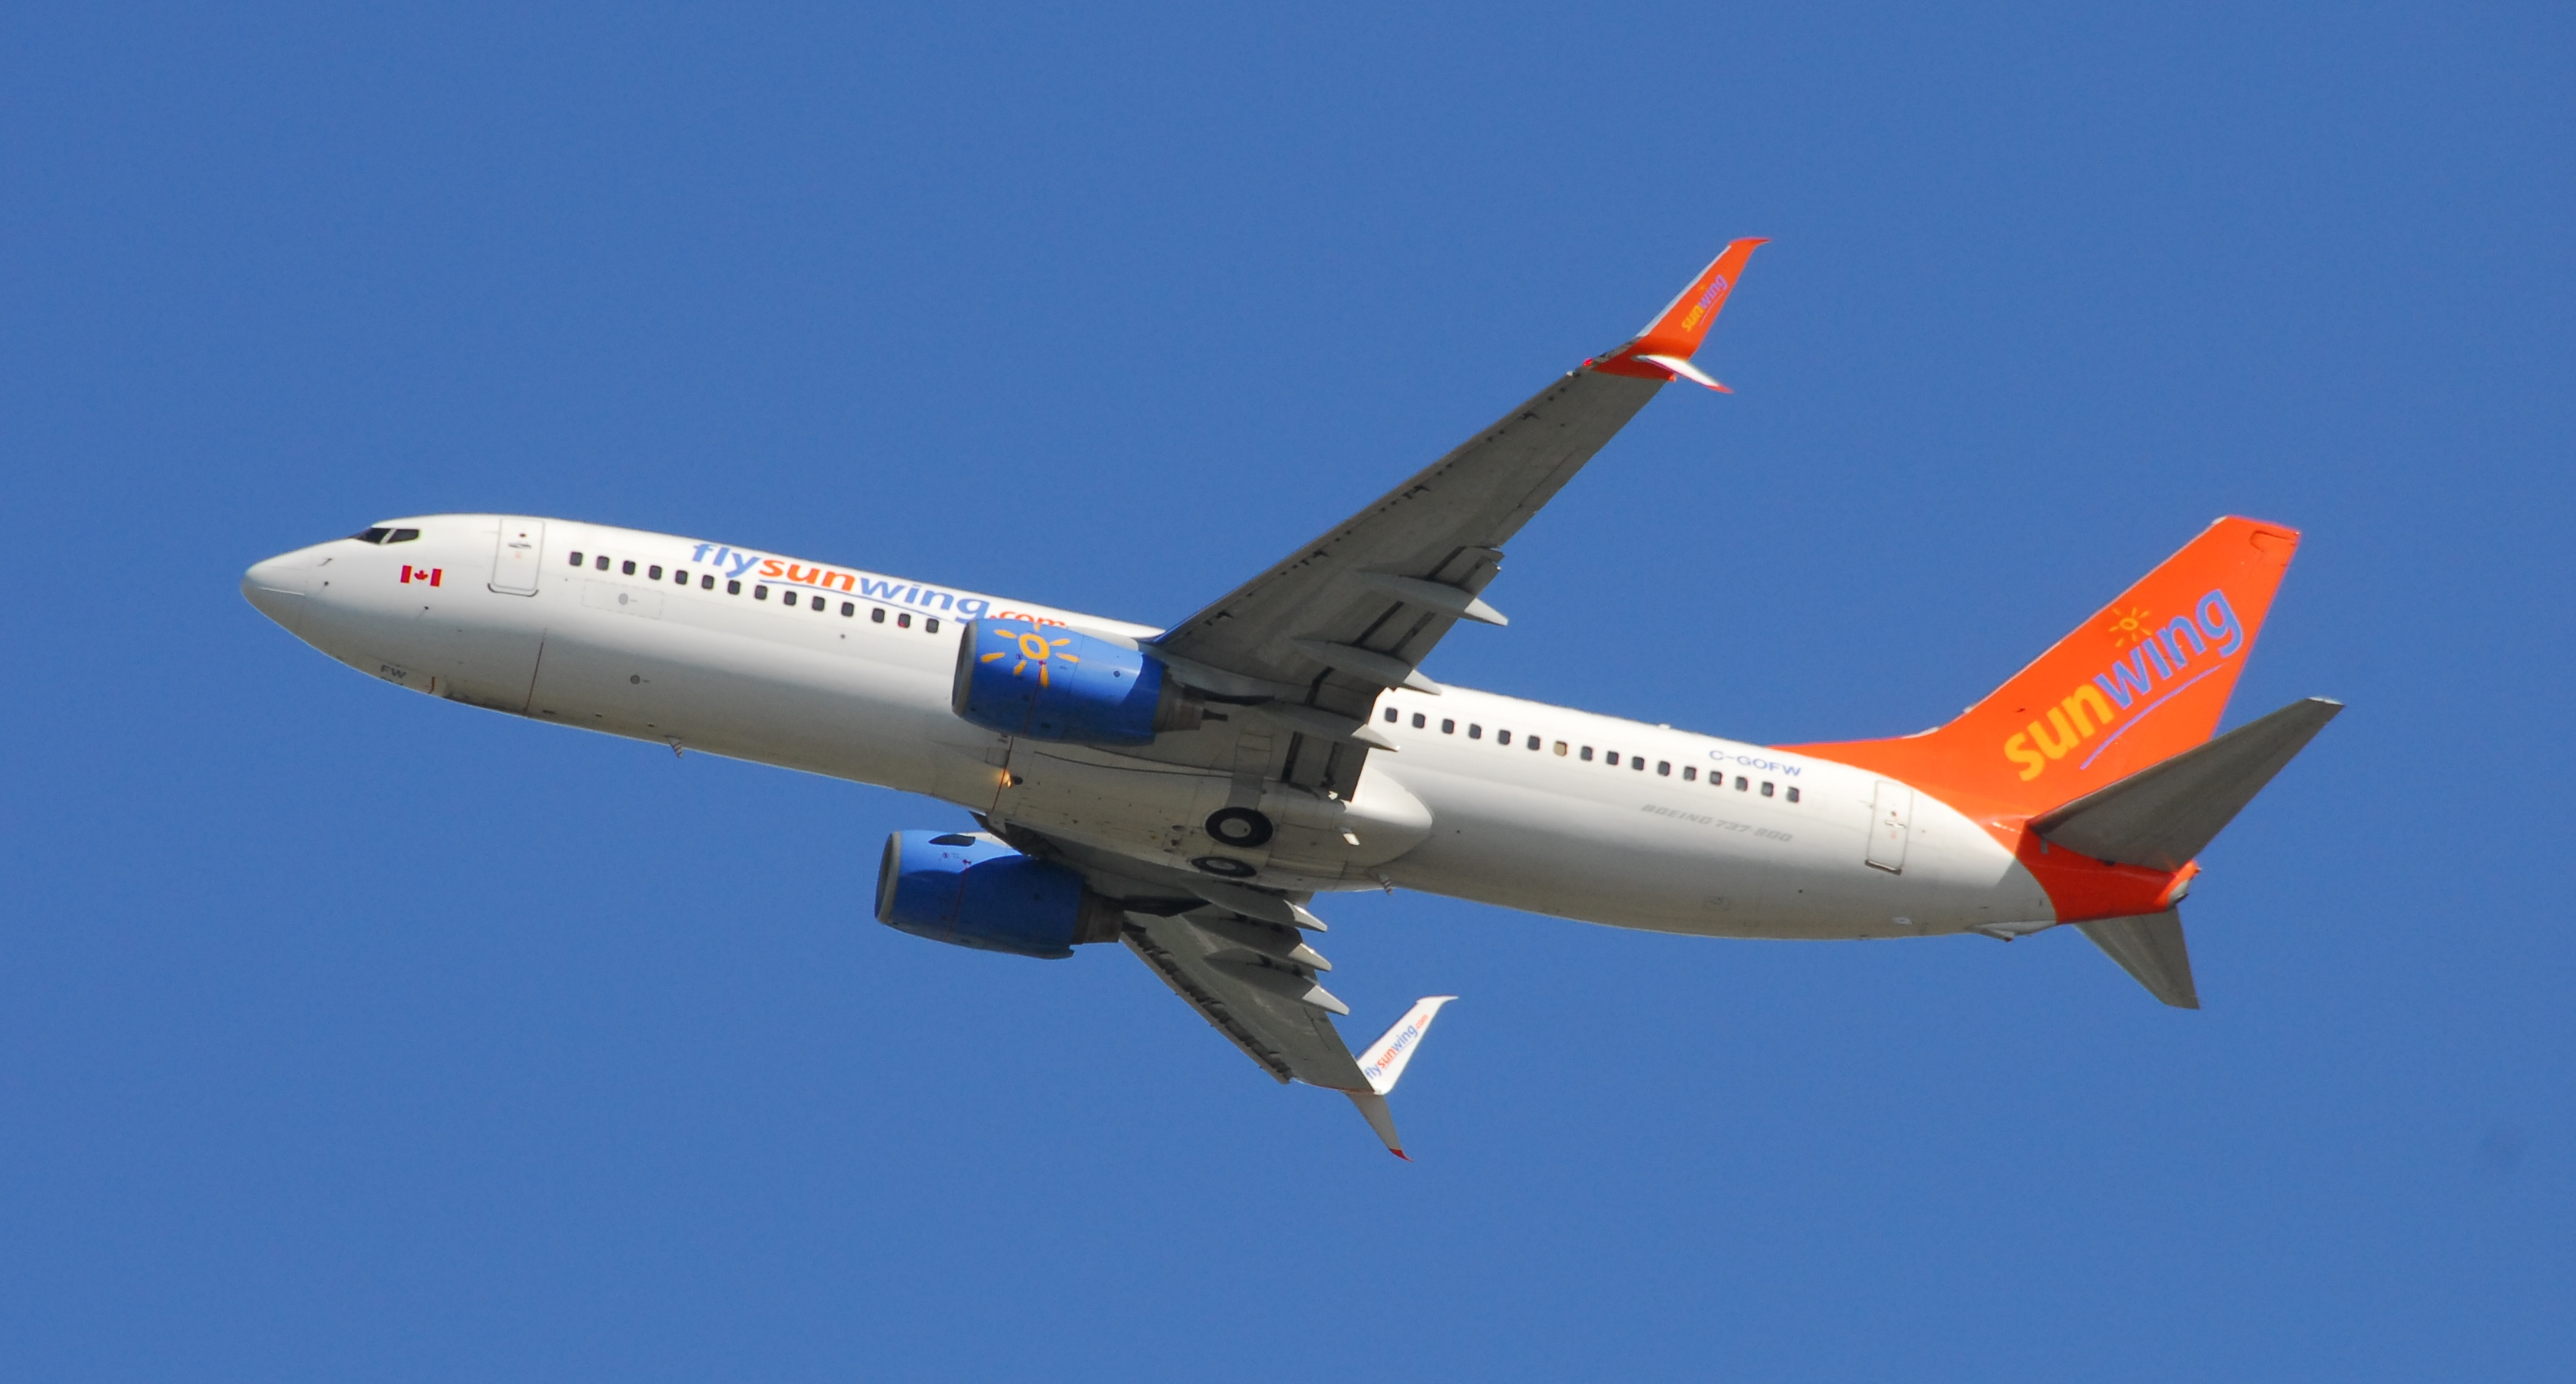 File:Sunwing Airlines Boeing 737-8BK - C-GOFW - Flight SWG730 from